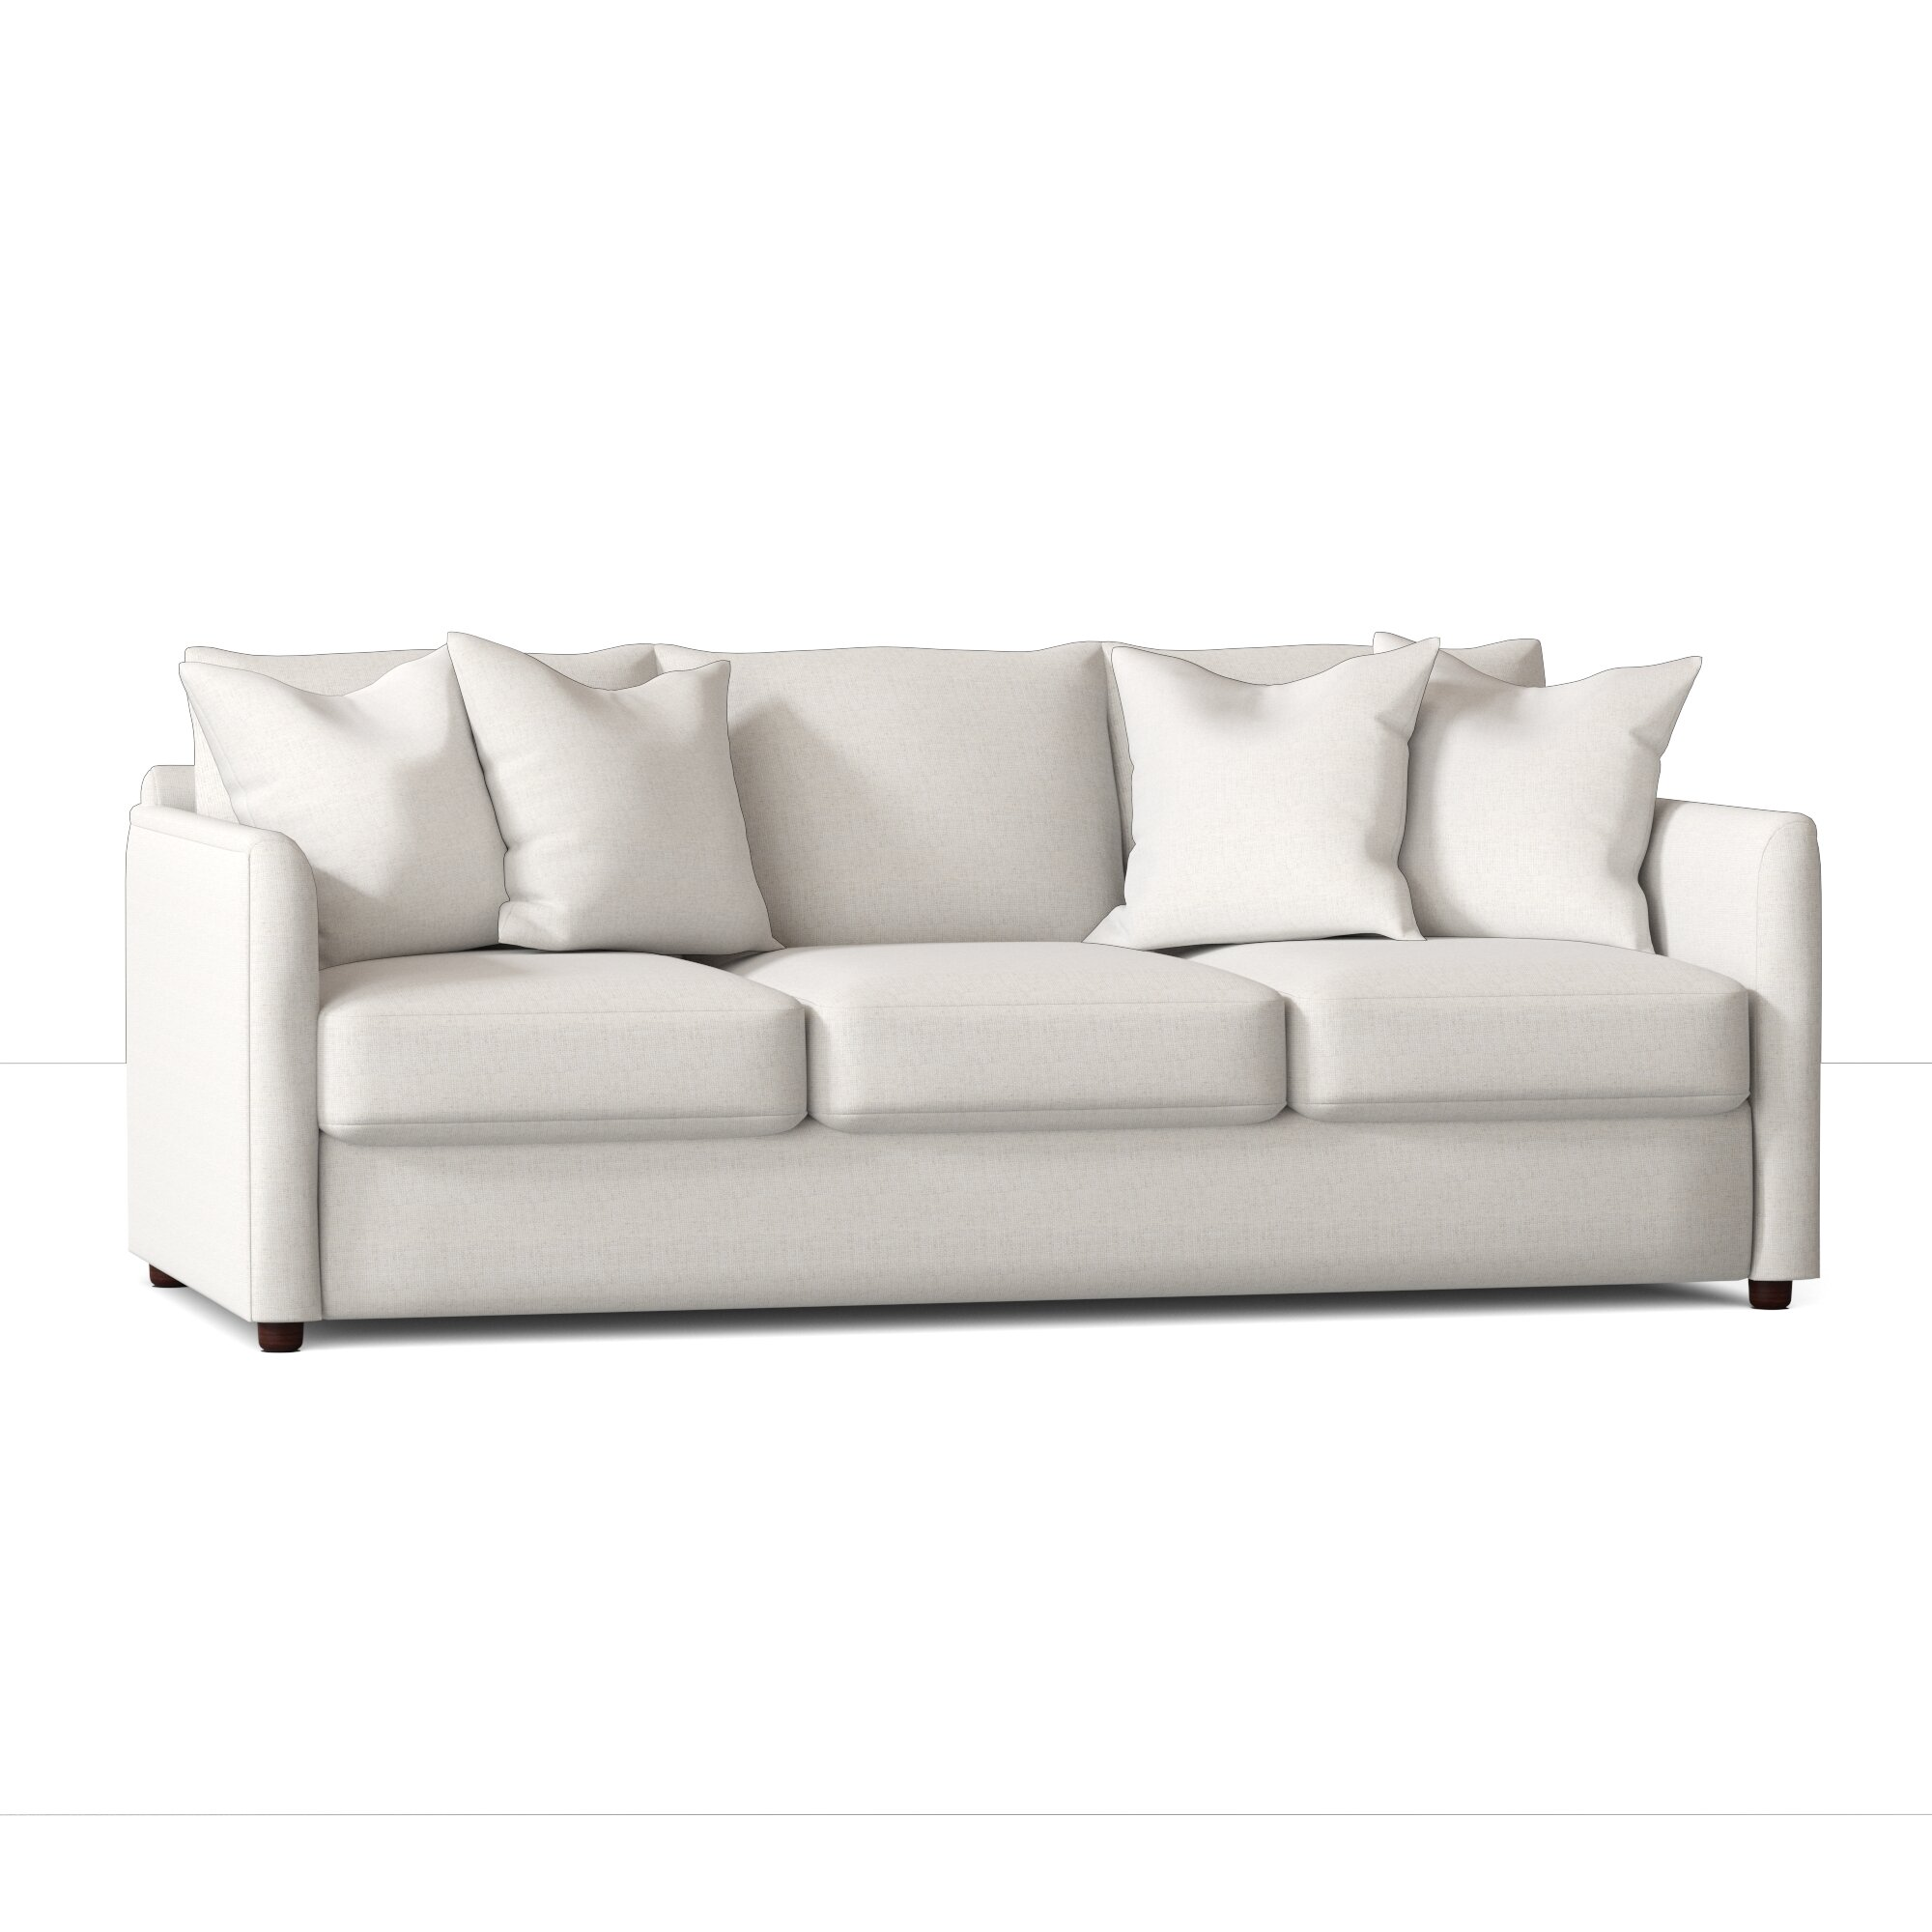 Alice Cotton 85 Square Arm Sofa